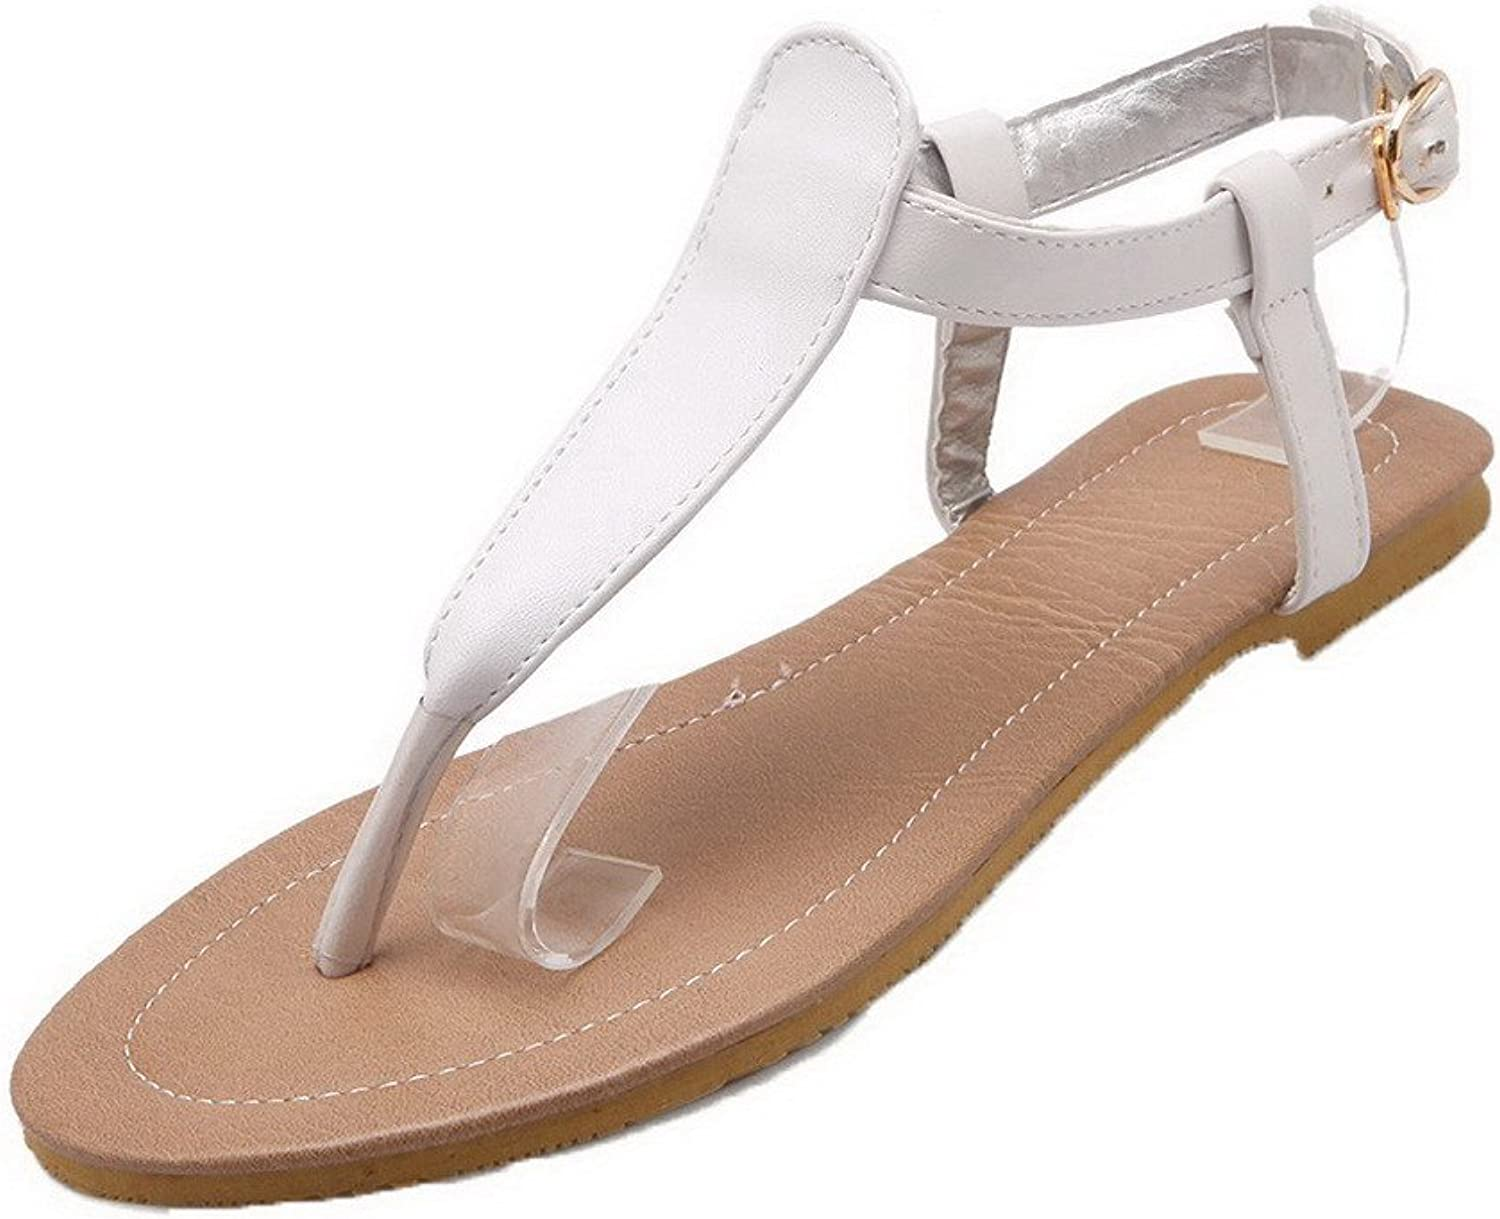 WeiPoot Women's Split Toe No-Heel Pu Solid Buckle Sandals